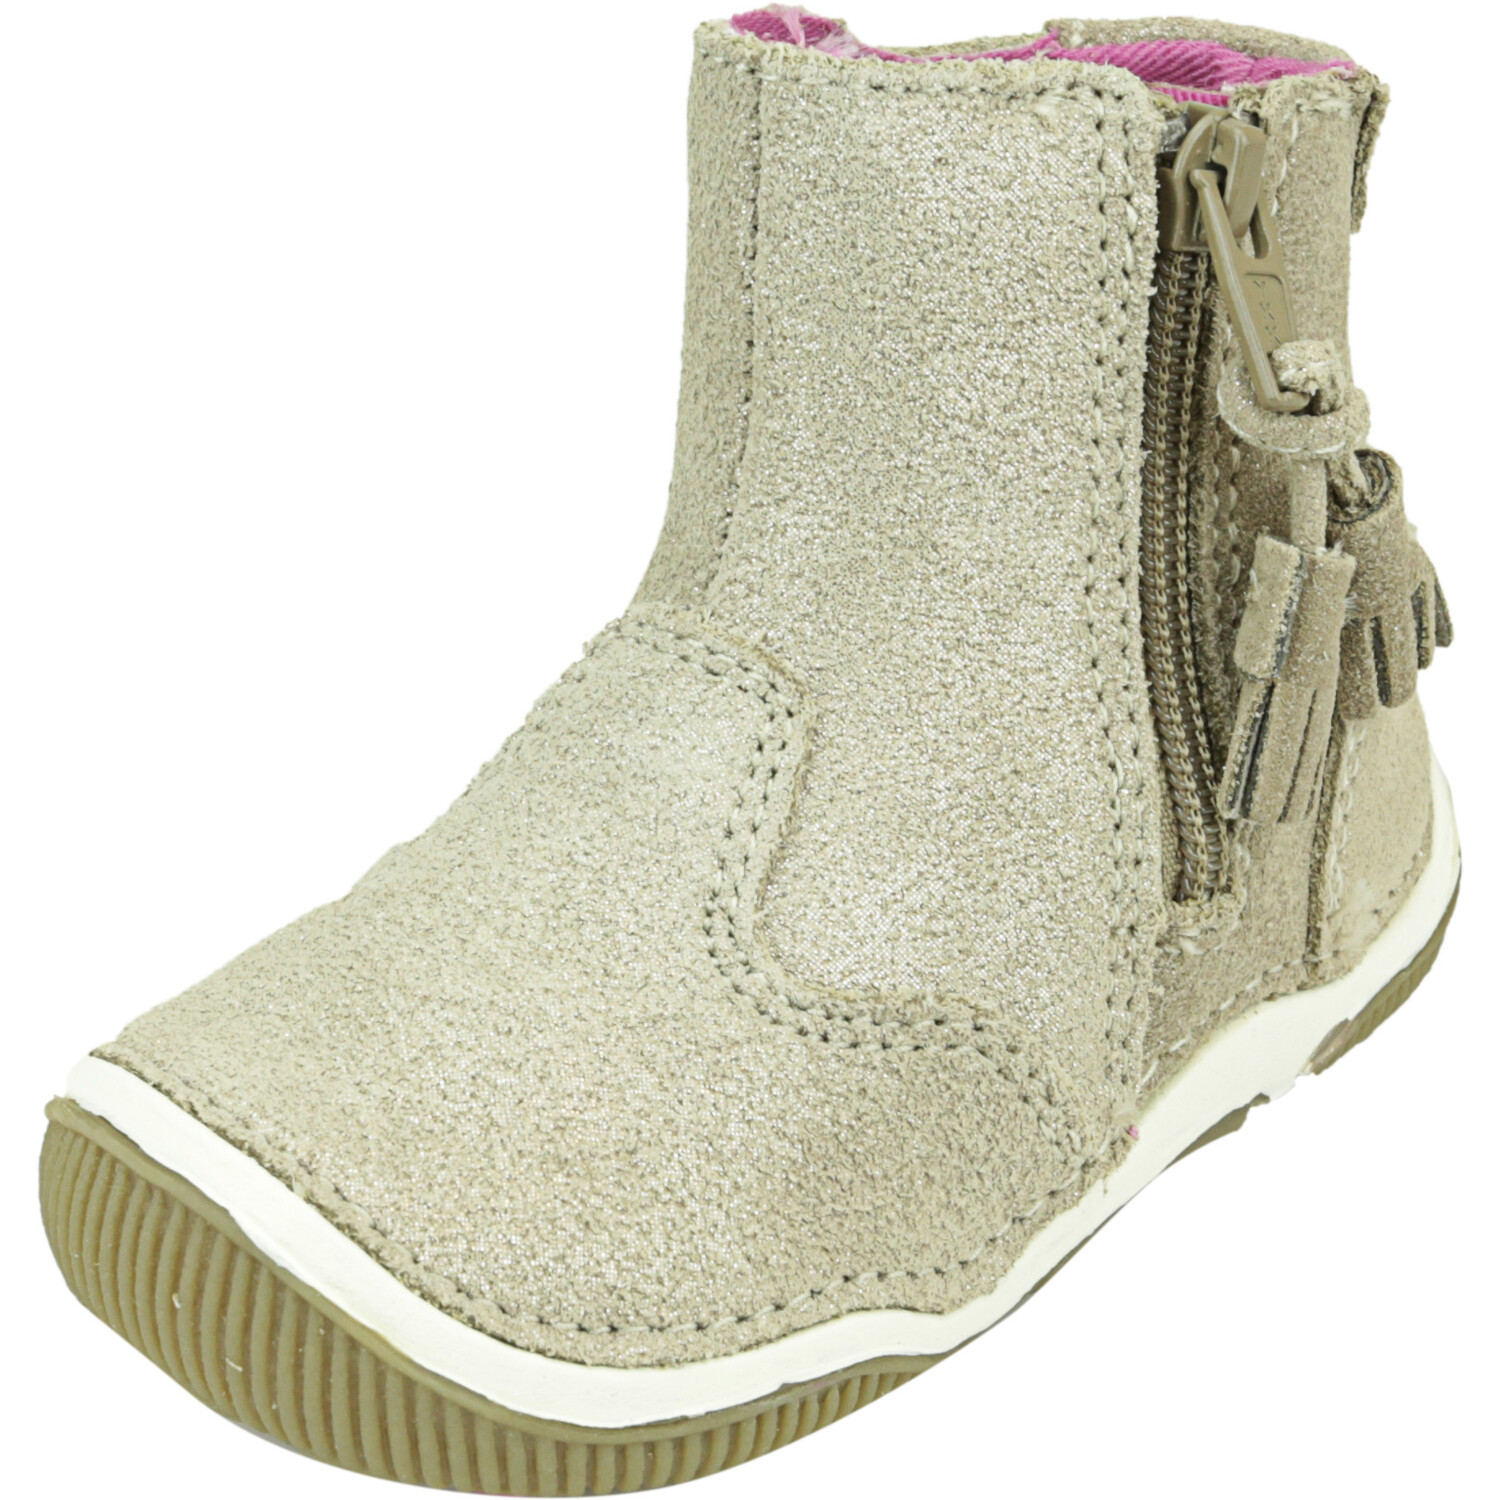 Stride Rite Girl's Srt Zoe Light Gold High-Top Leather Boot - 4M